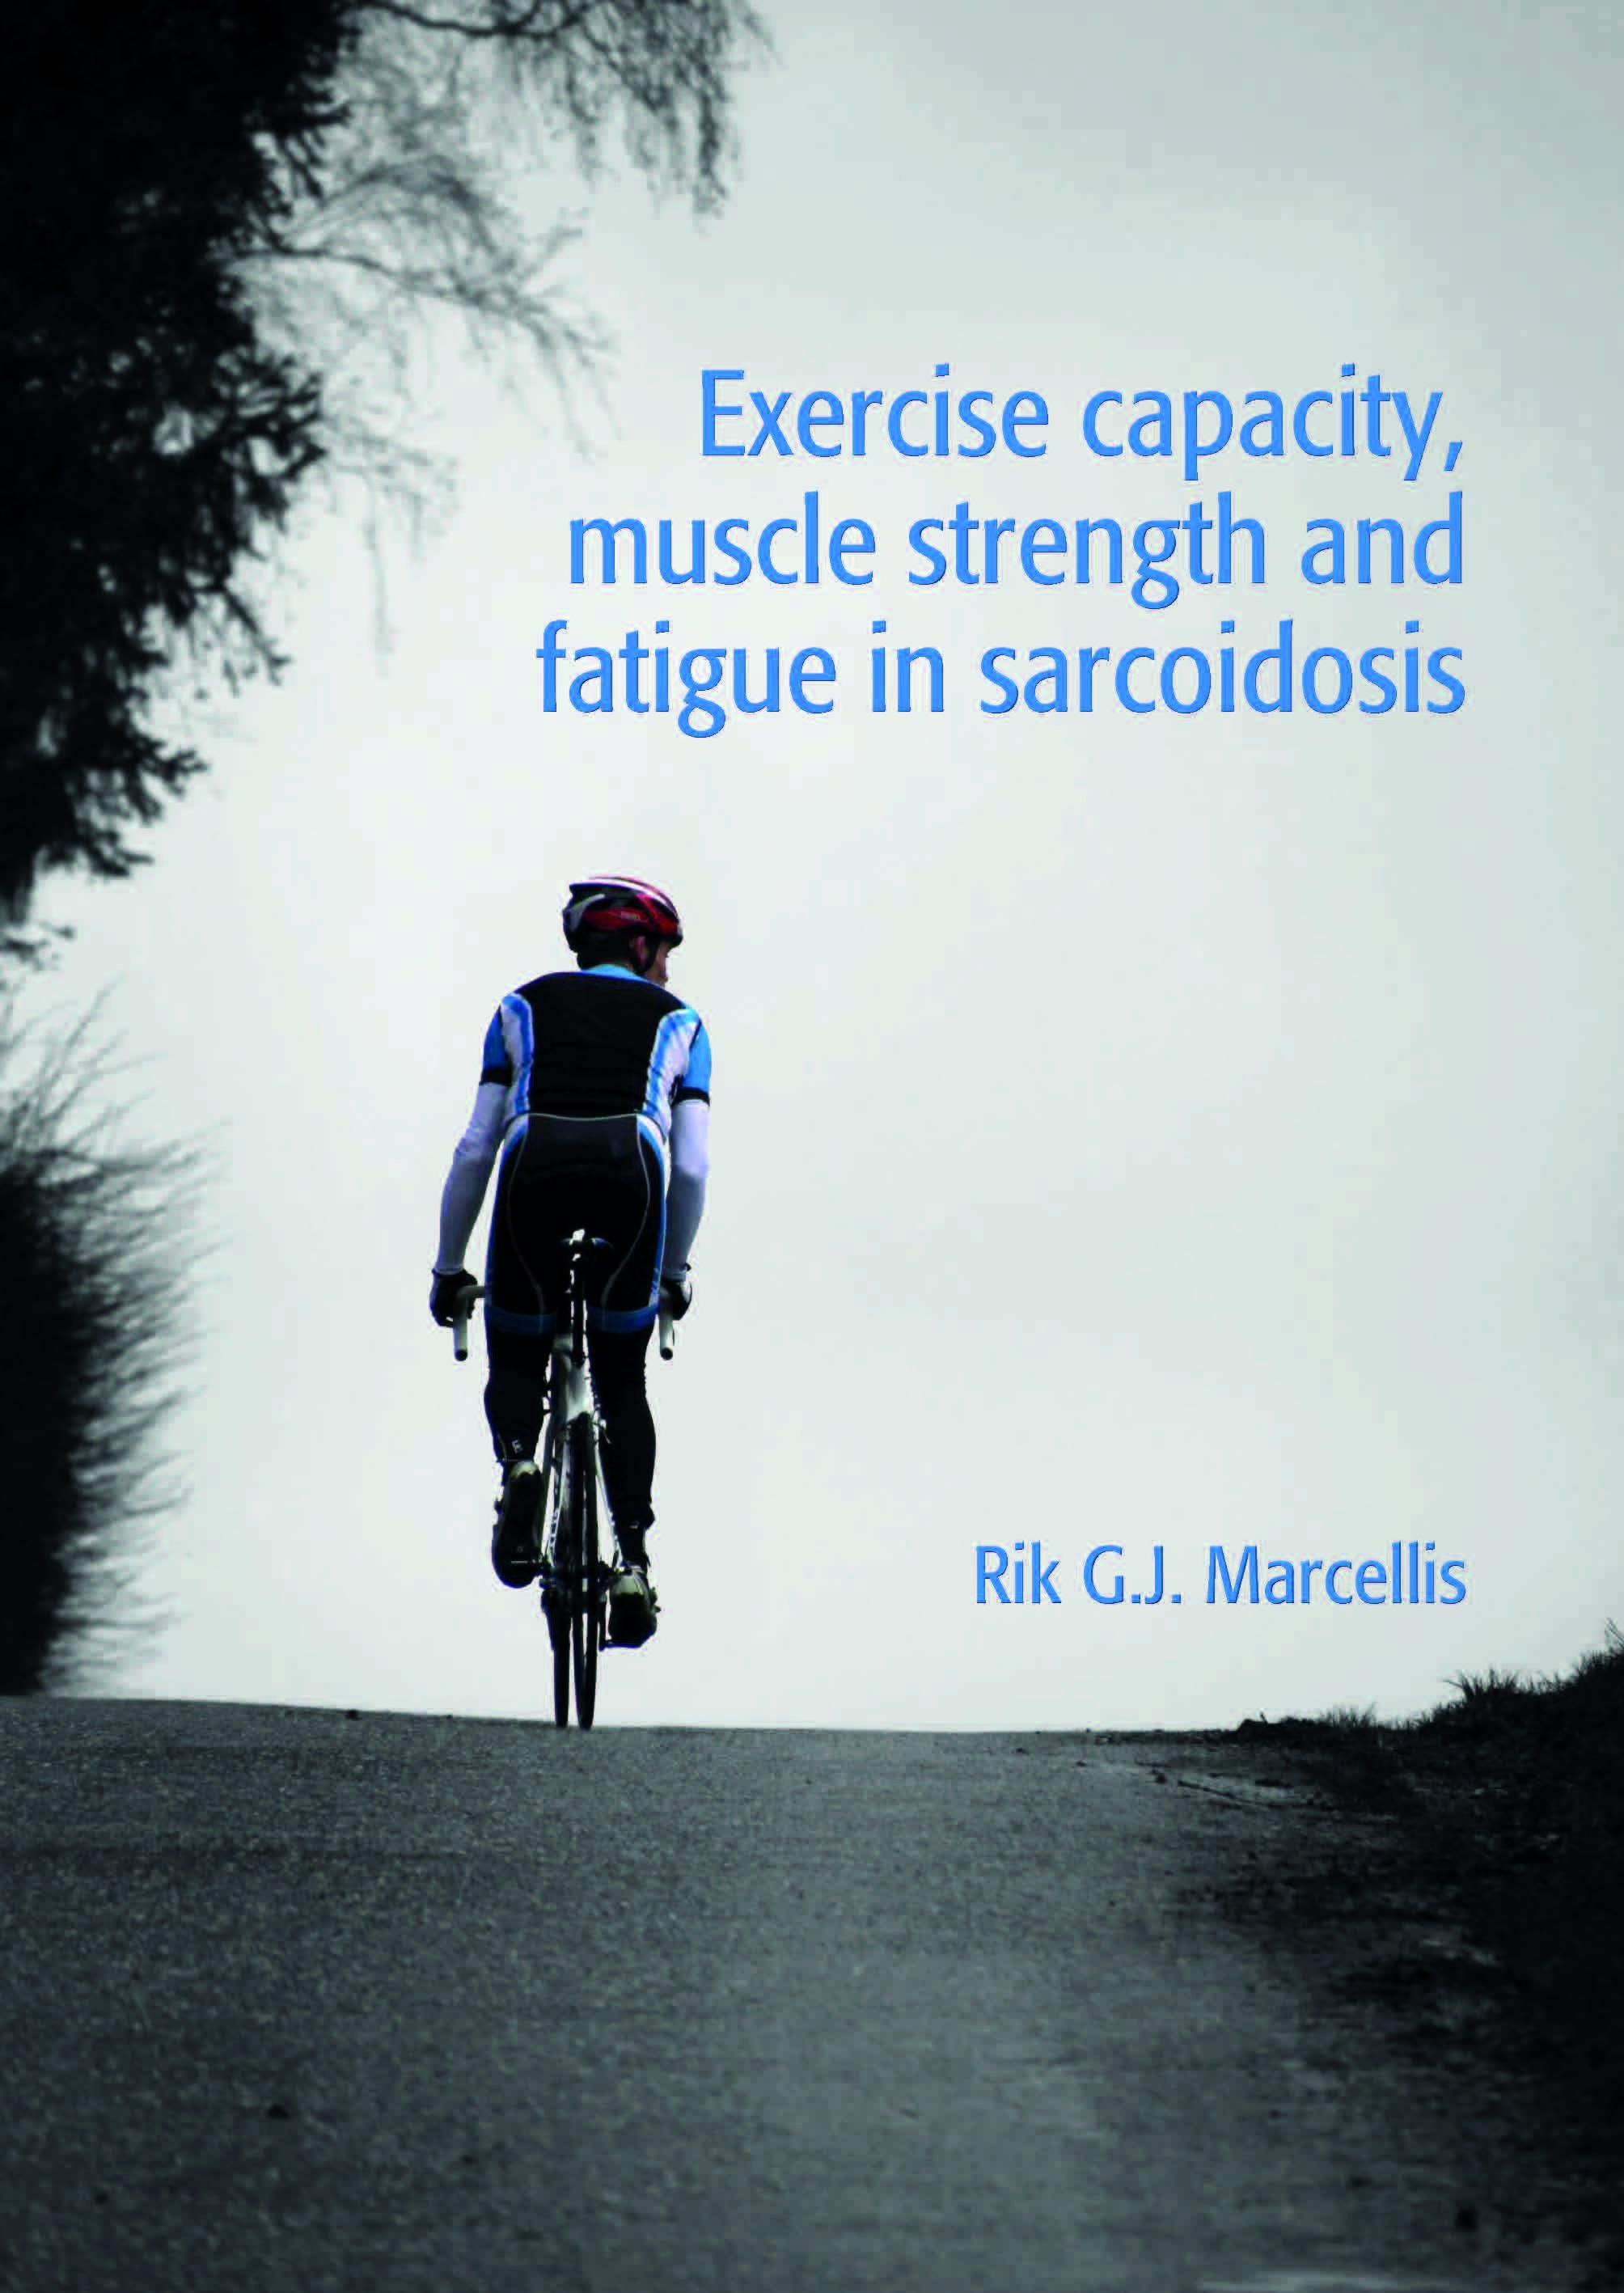 Marcelis - Exercise capacity, muscle strength and fatigue in sarcoidosis